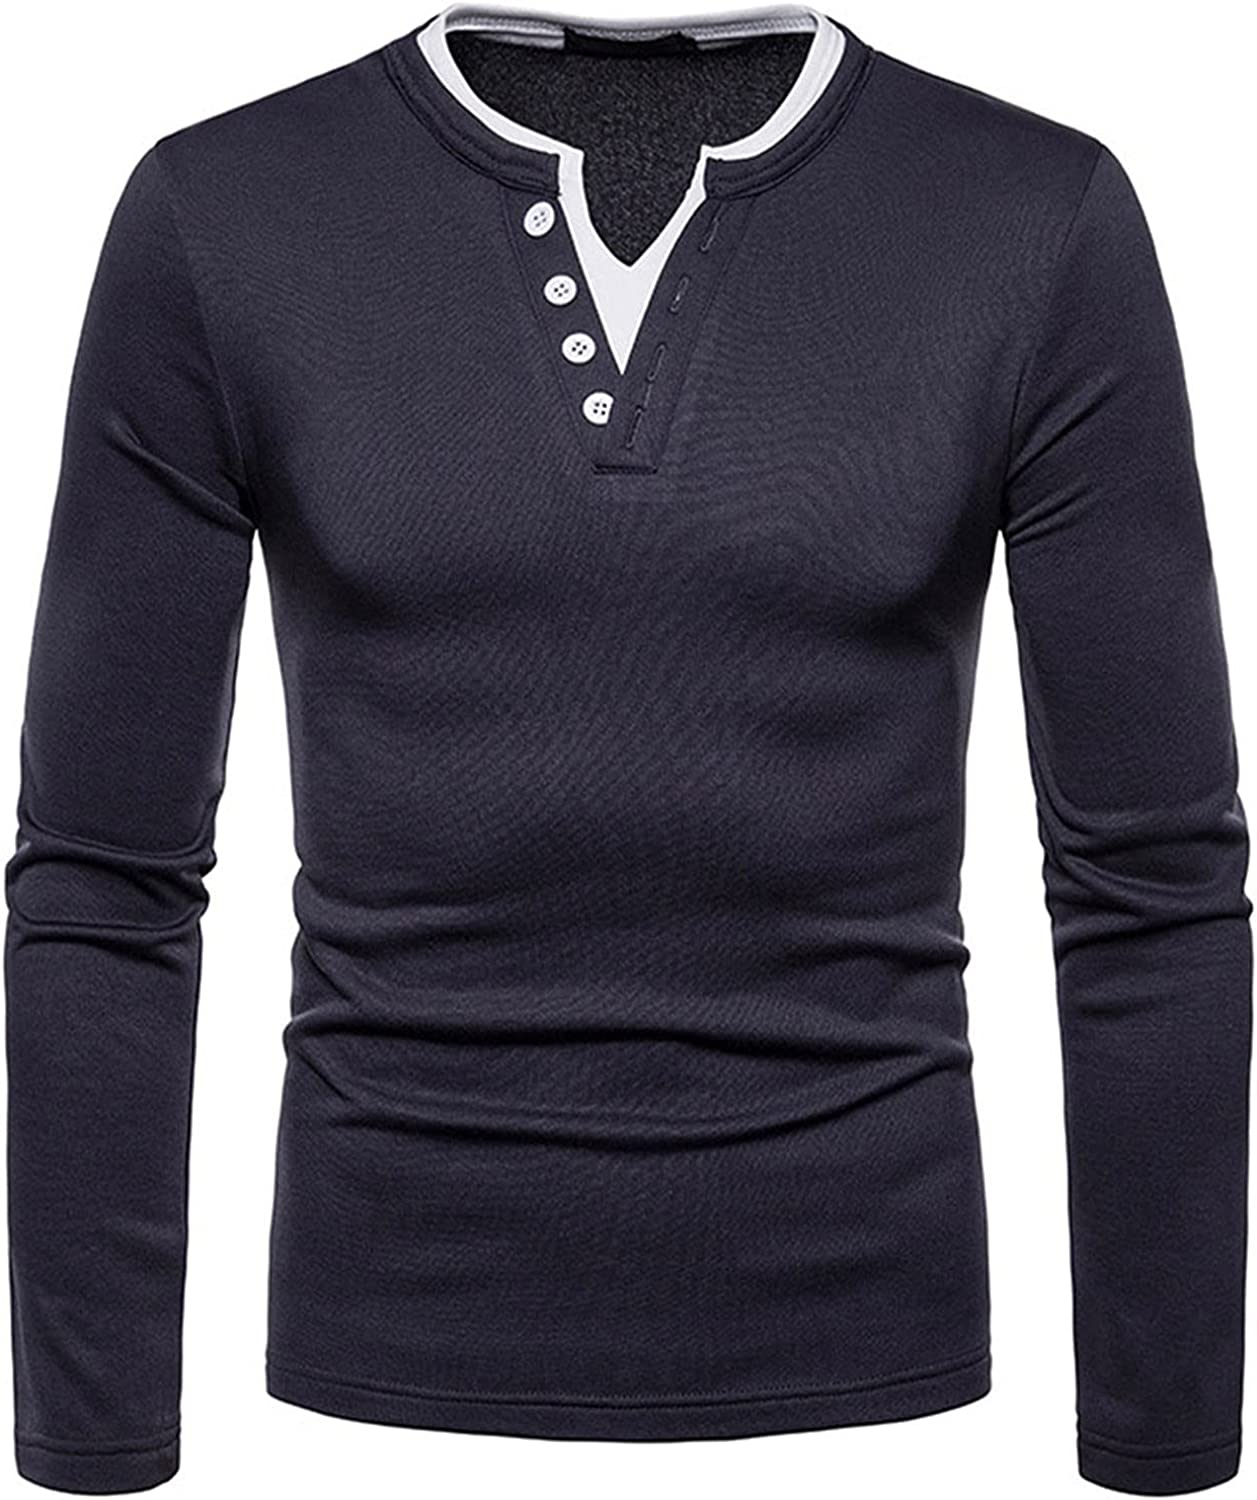 Maryia Mens Casual Henley Fashion T-Shirts Slim Fit Long Sleeve V Neck White Strim Button Down Models Basic Blouse